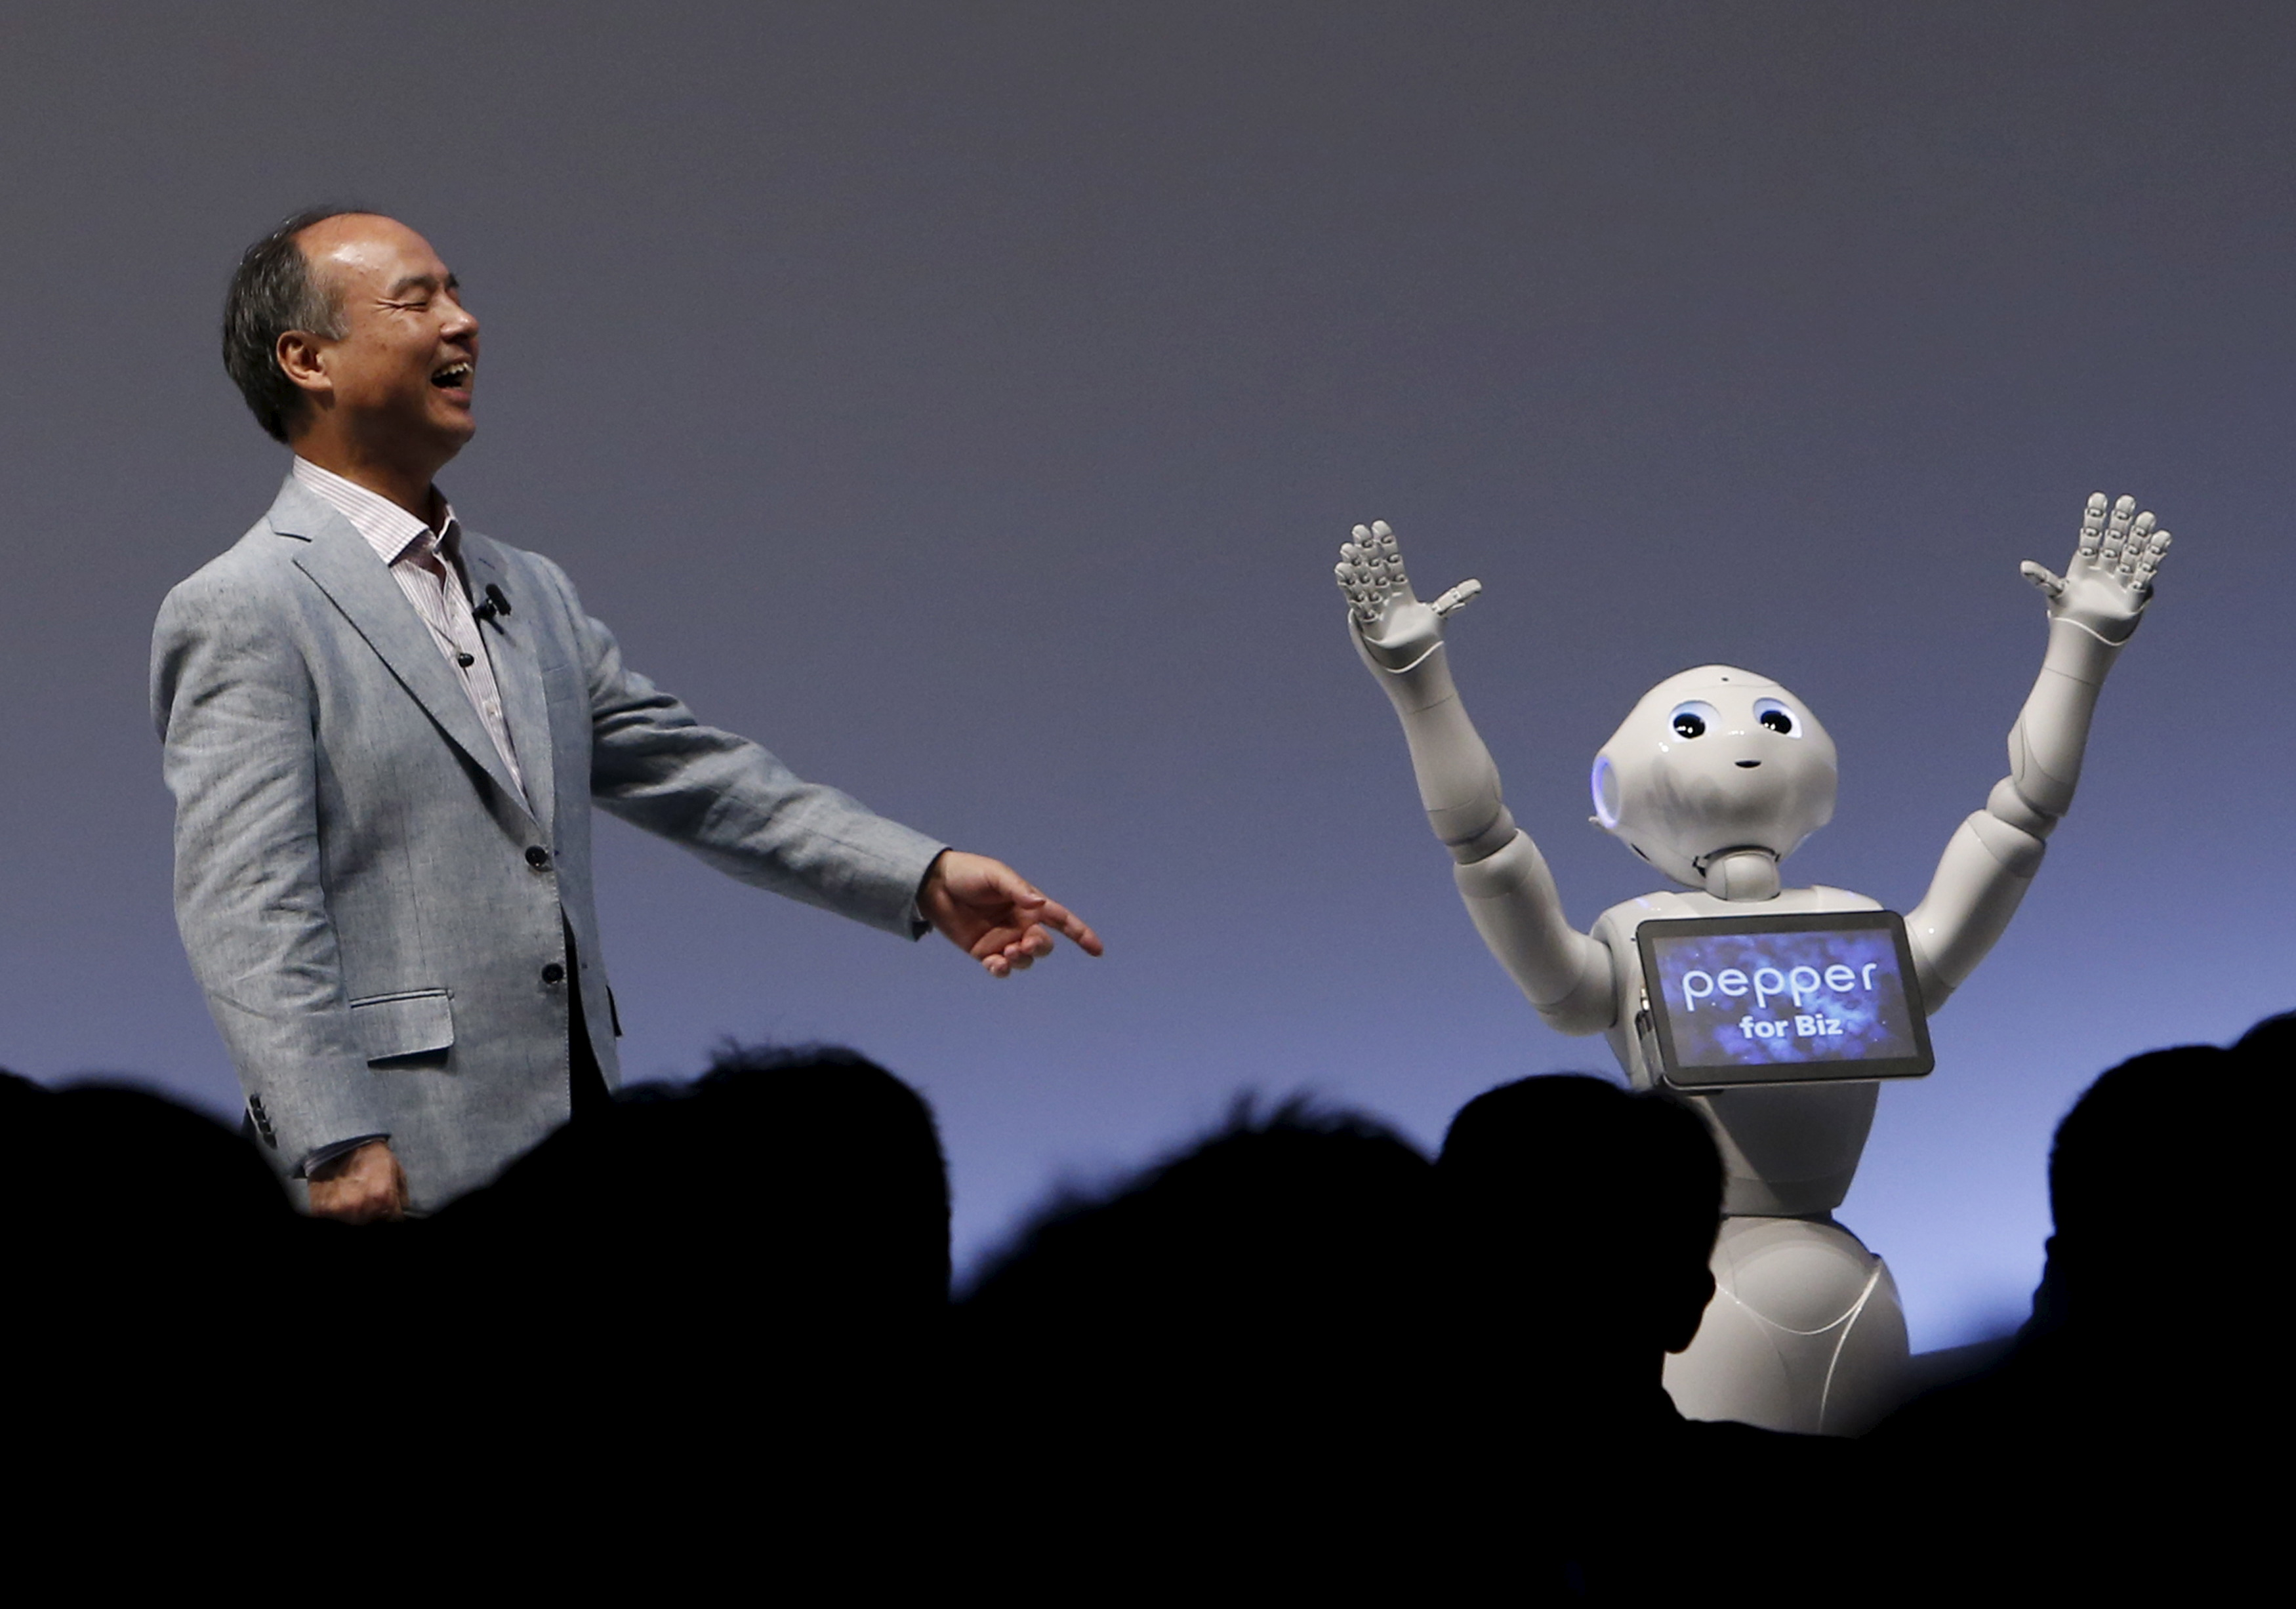 """SoftBank Group Corp. Chairman and CEO Masayoshi Son reacts as SoftBank's human-like robots named """"Pepper"""" performs during the SoftBank World 2015 event in Tokyo"""